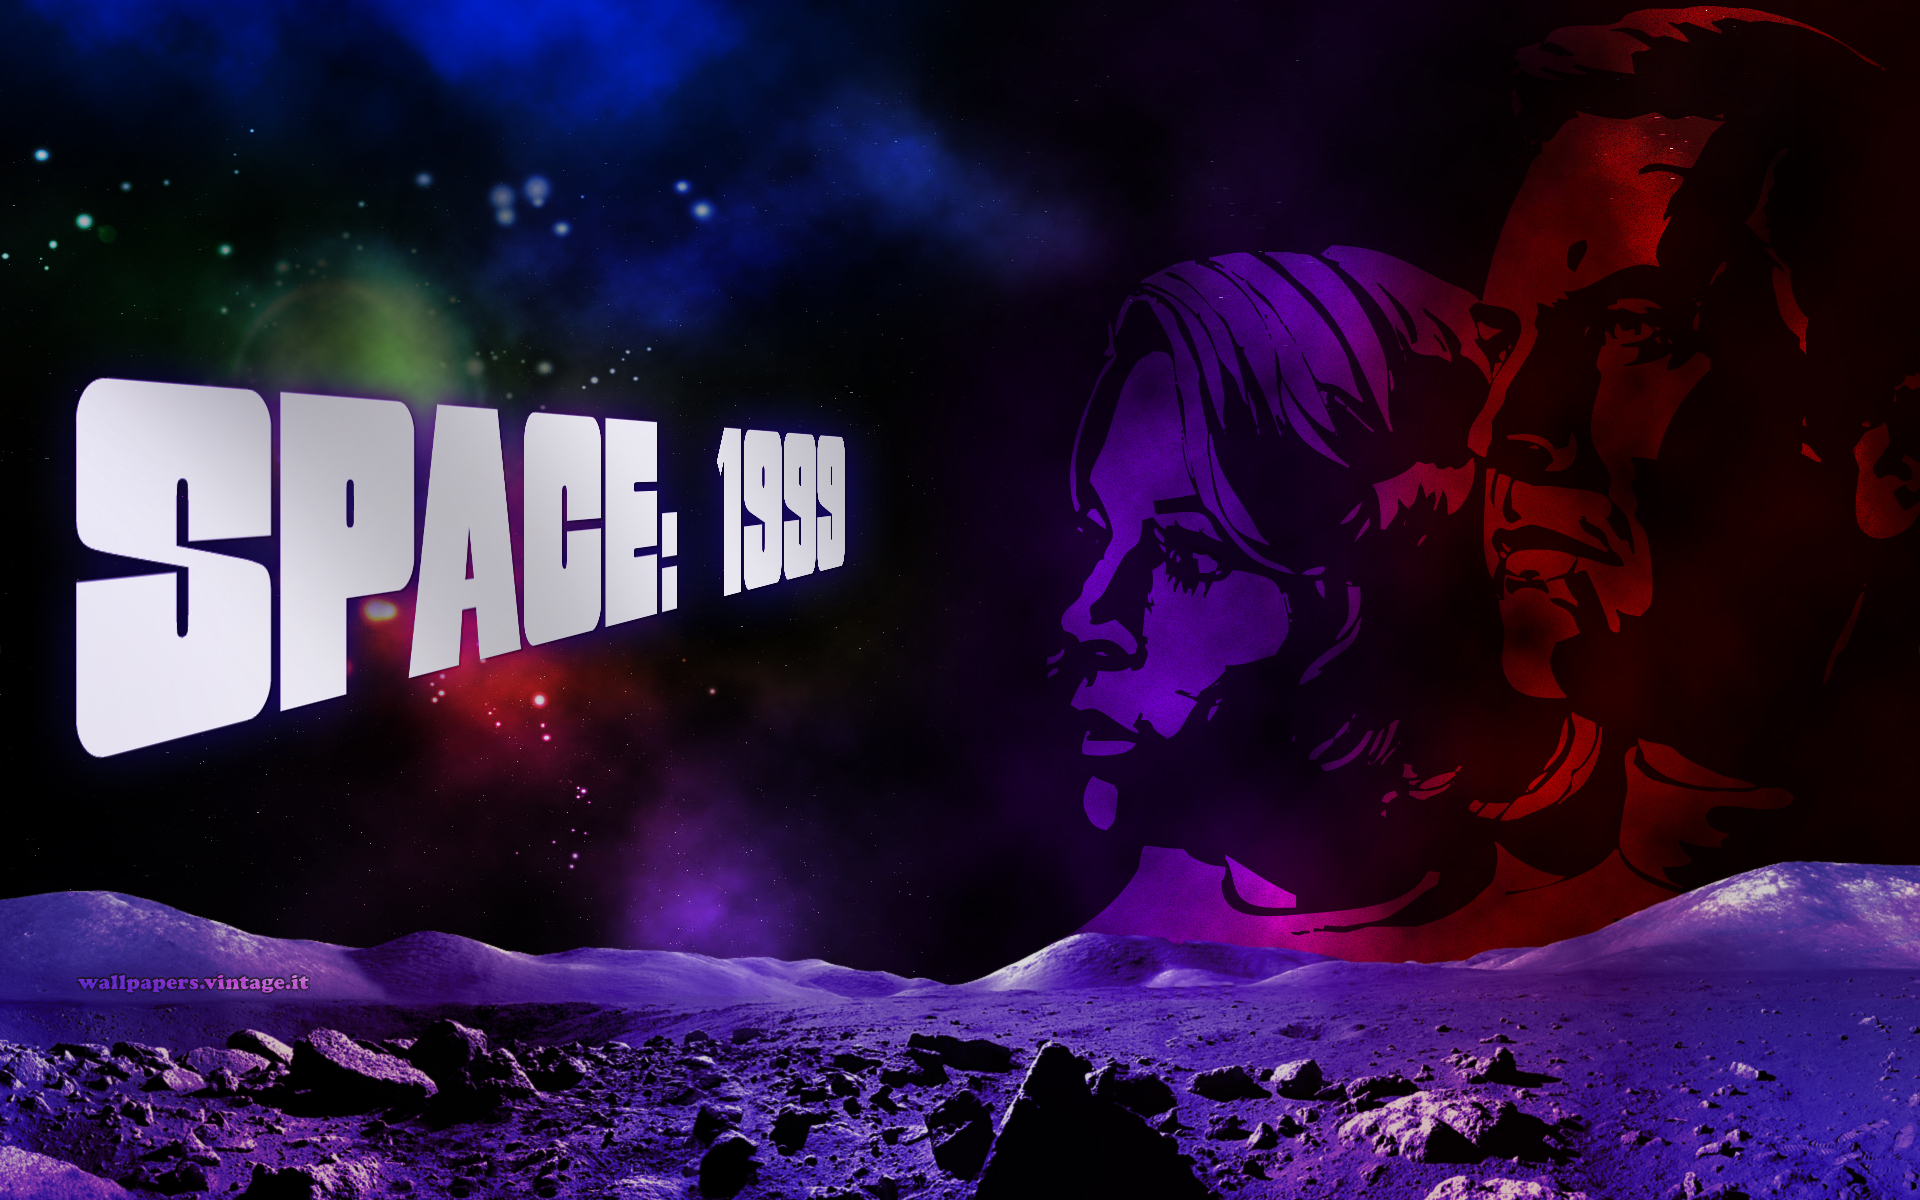 Space 1999 wallpaper 1920x1200jpg 1920x1200